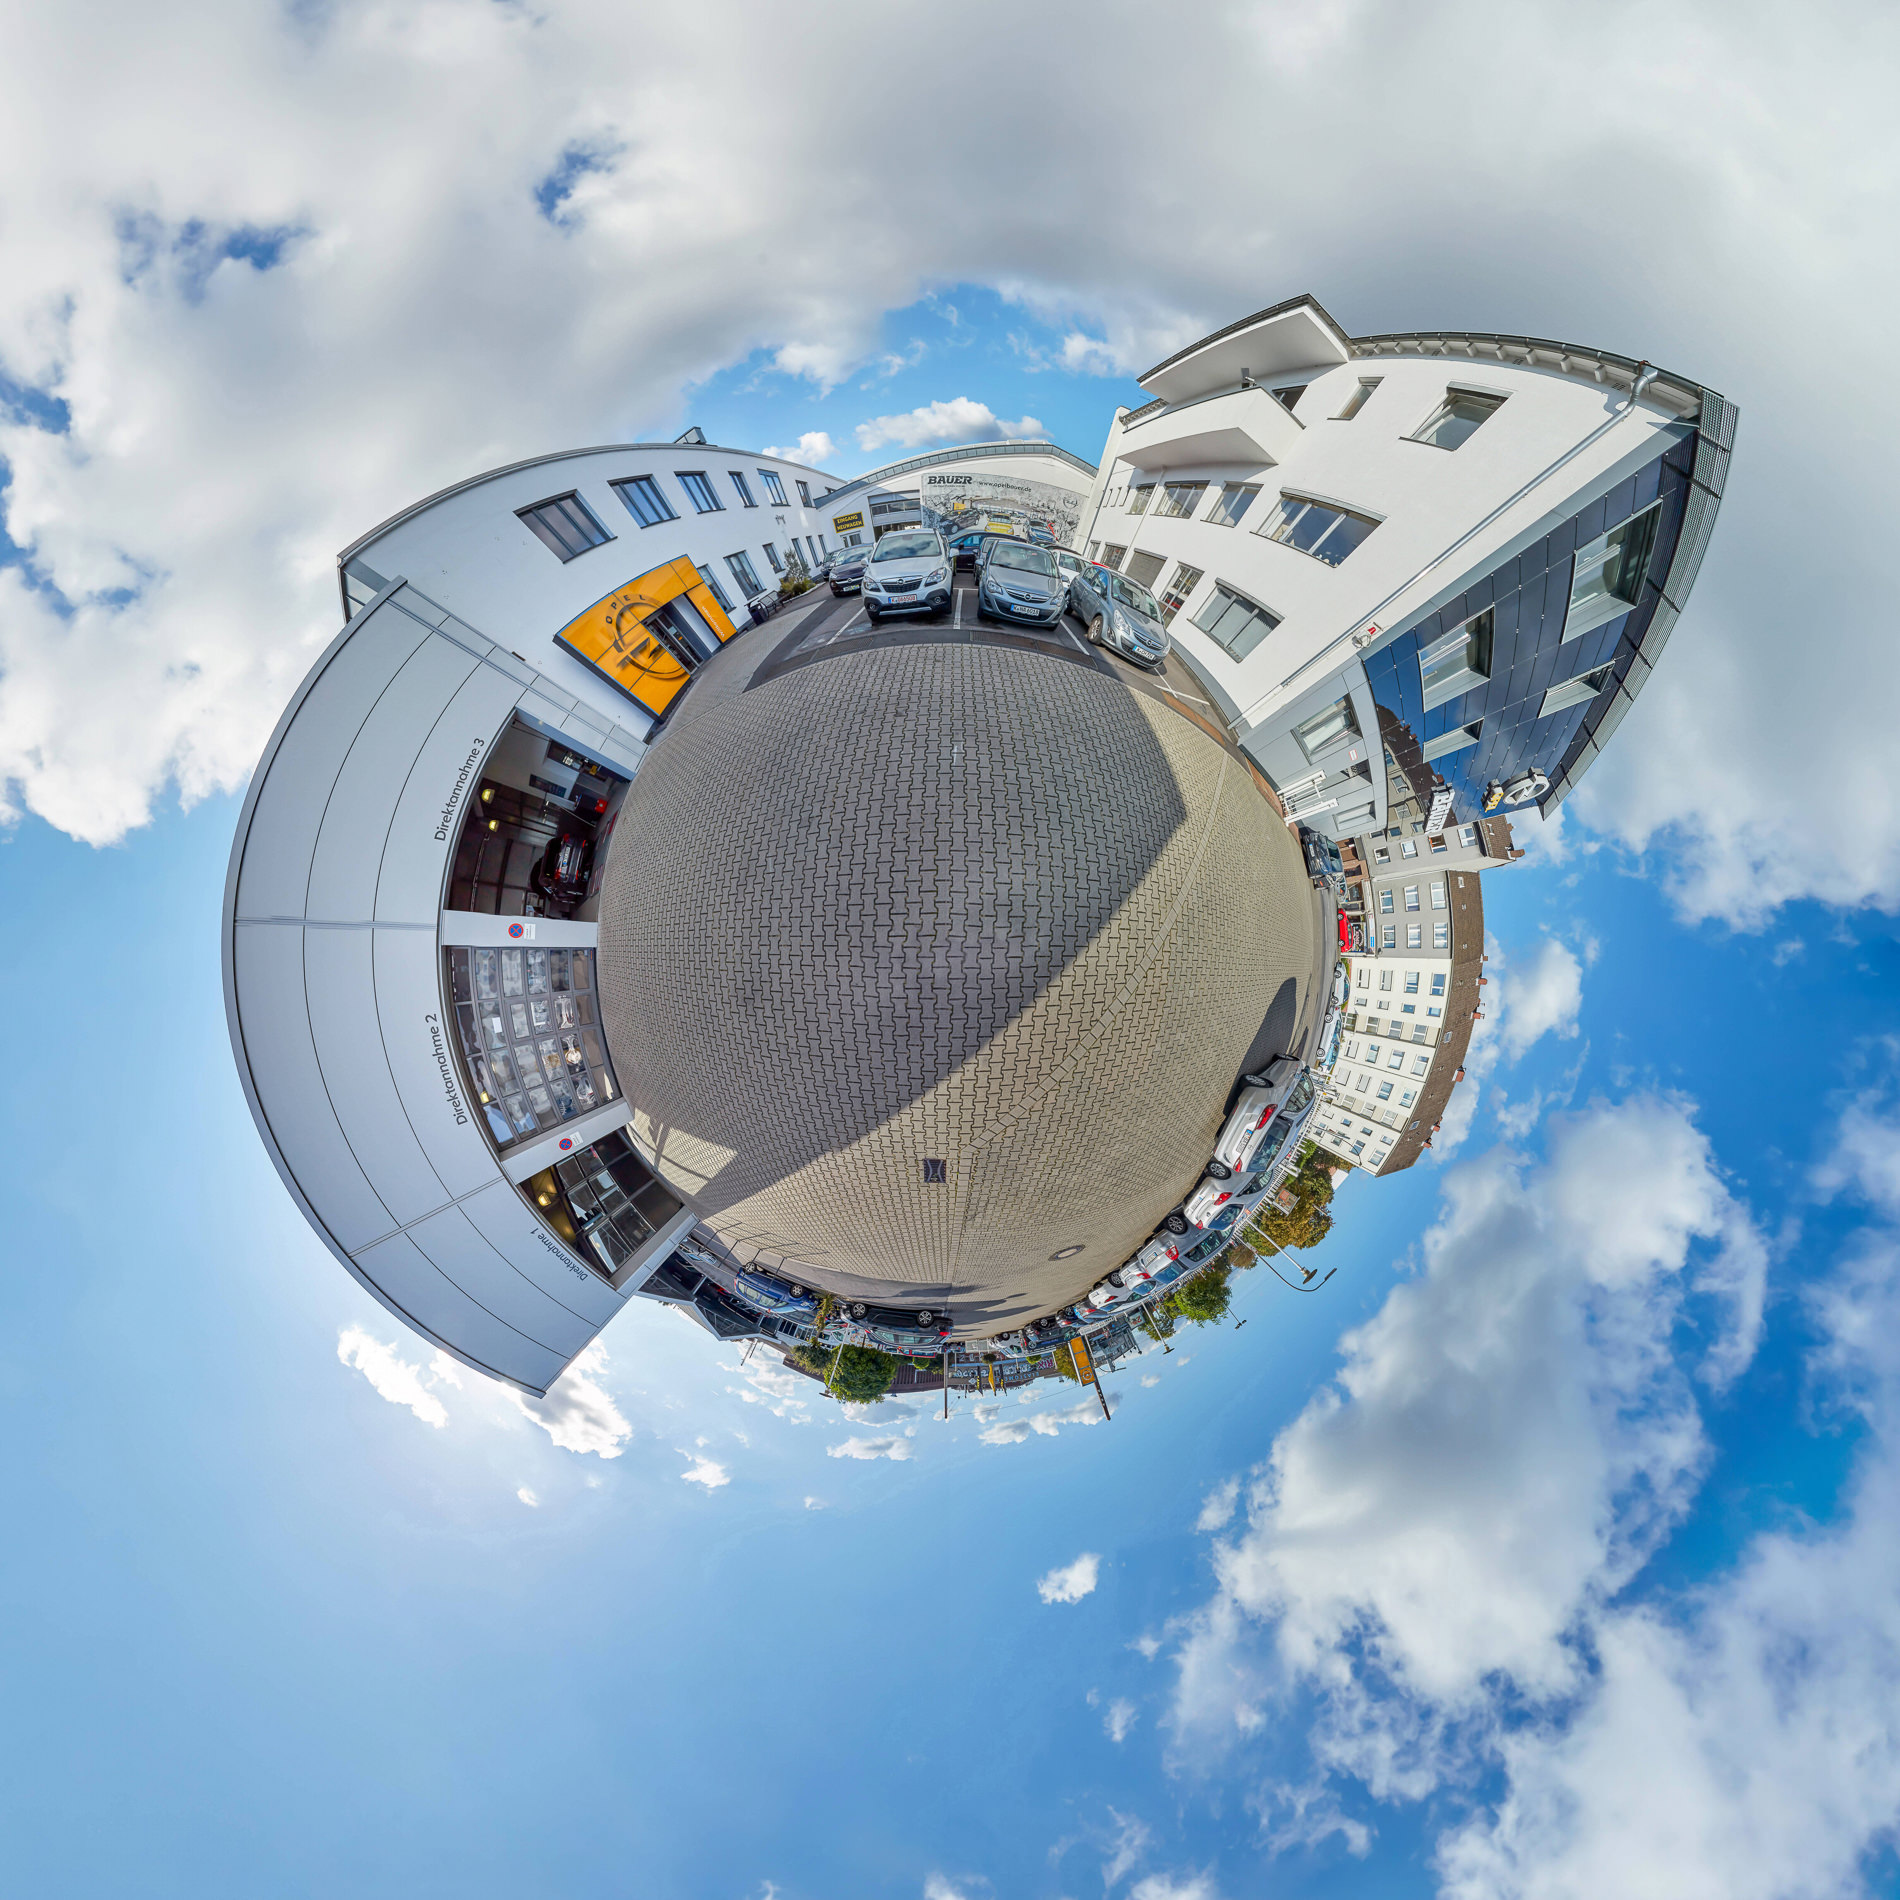 "Opel Bauer Panorama Tour "" Little Planet auf dem Hof von Hopel Bauer in Köln "" Photo taken by Fotograf Patrick Gawandtka"